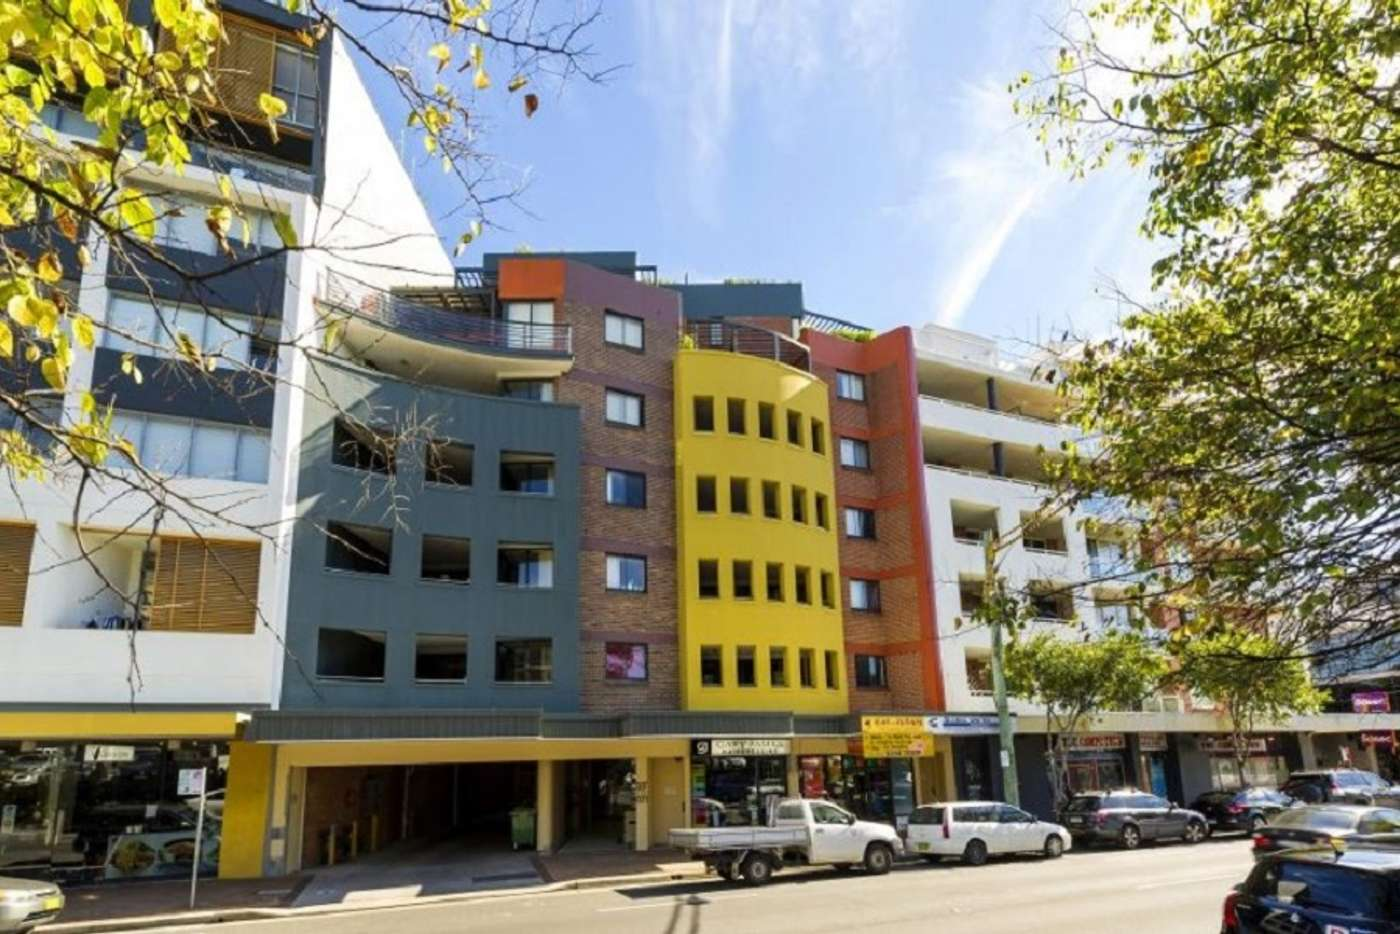 Main view of Homely apartment listing, 3/687 Anzac Parade, Maroubra NSW 2035